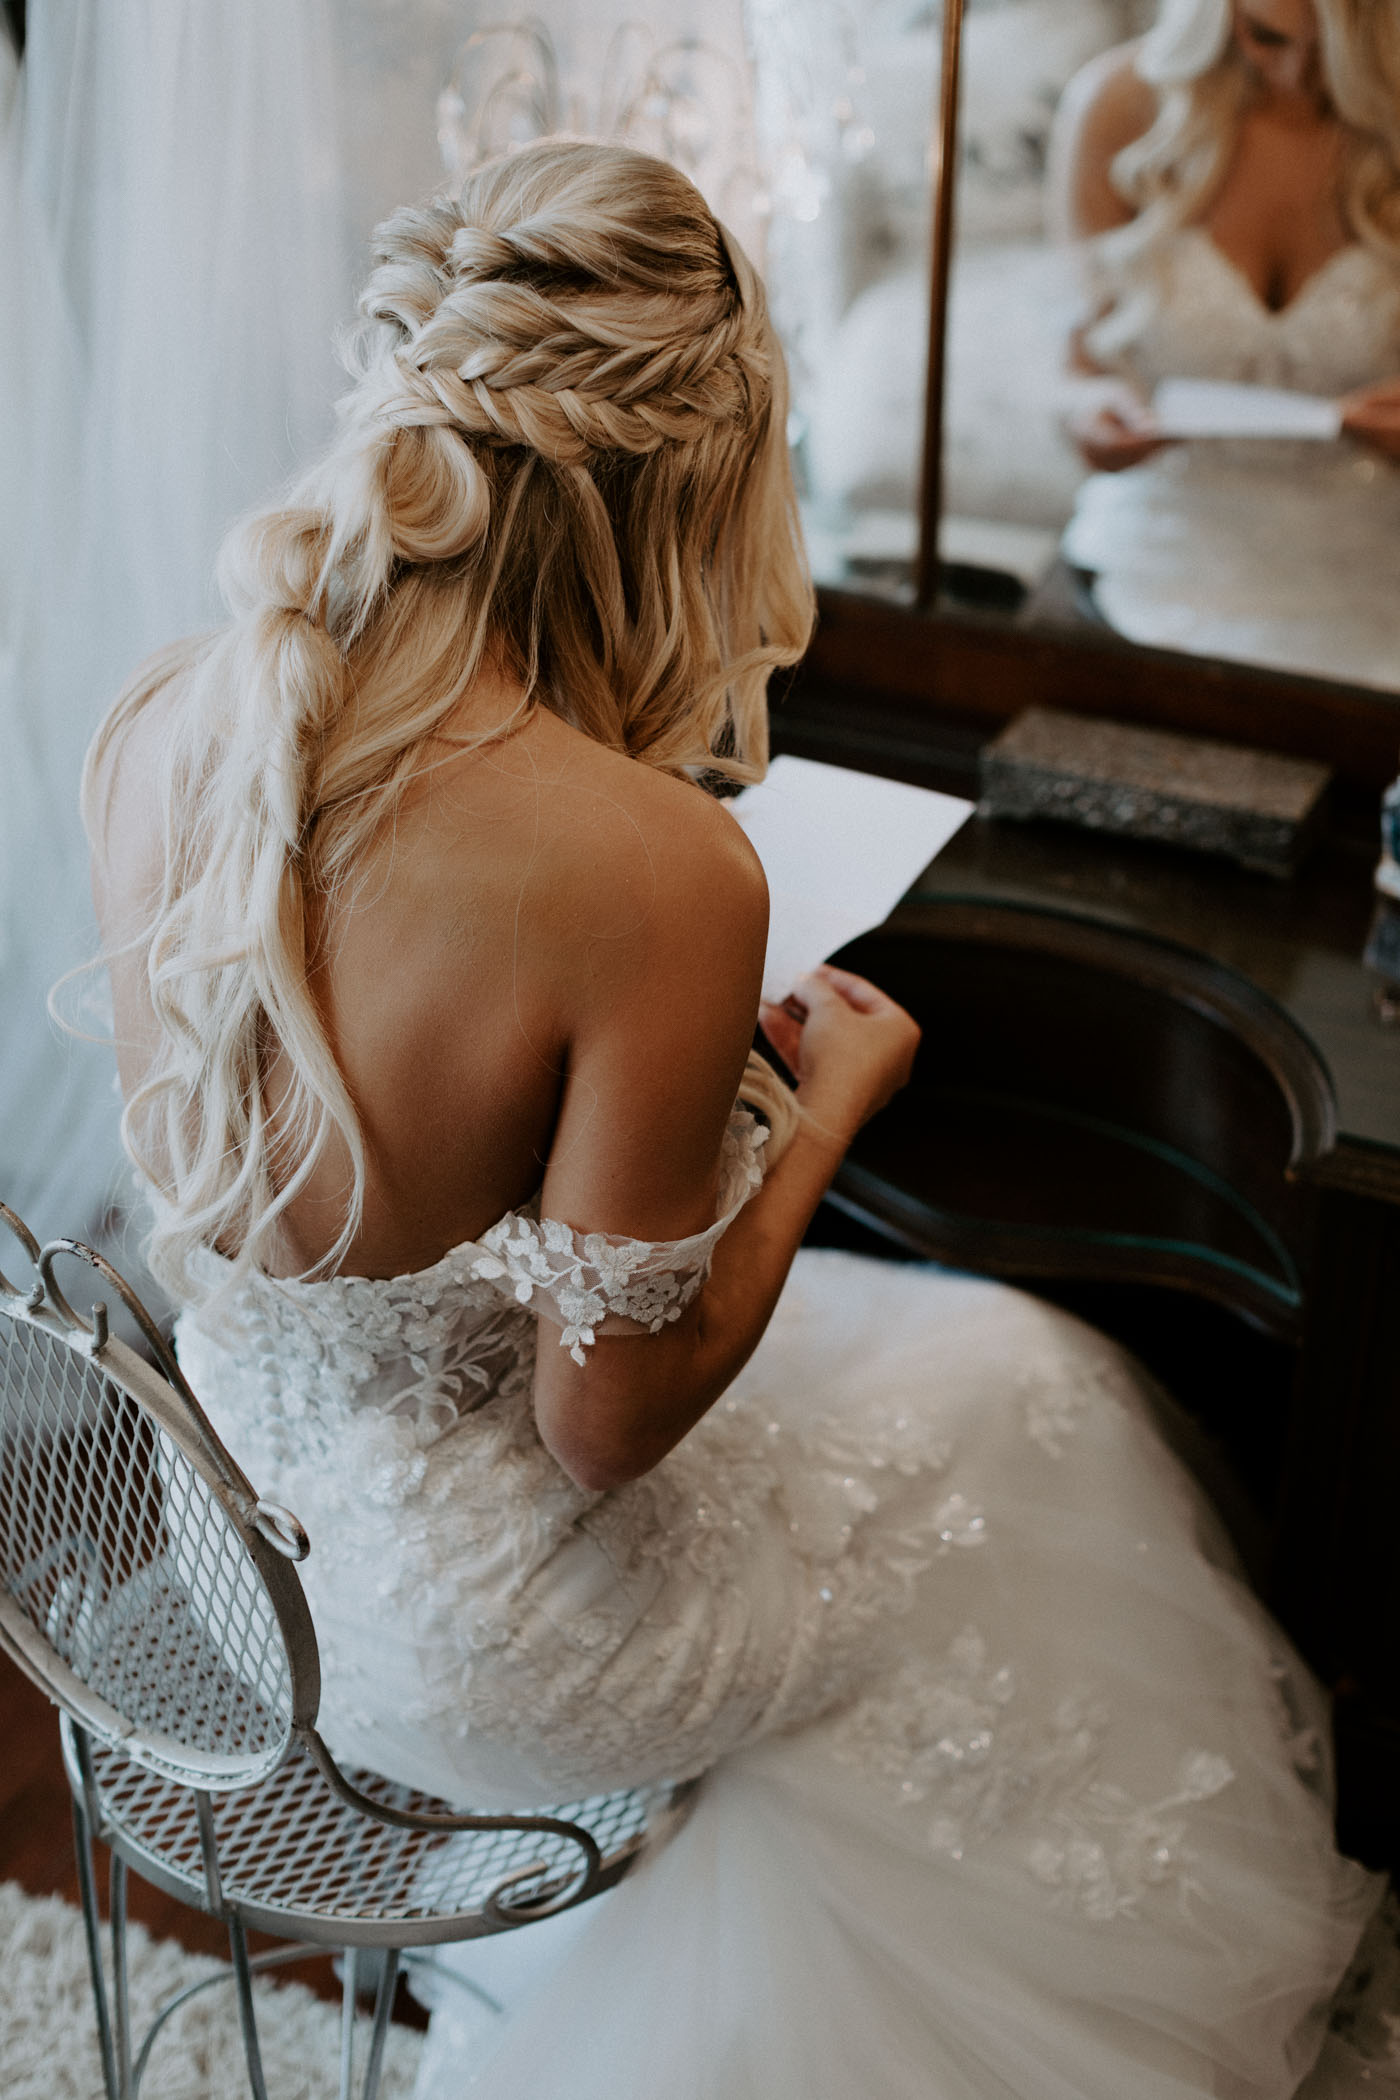 bride reading the letter her groom wrote her before wedding ceremony in DFW